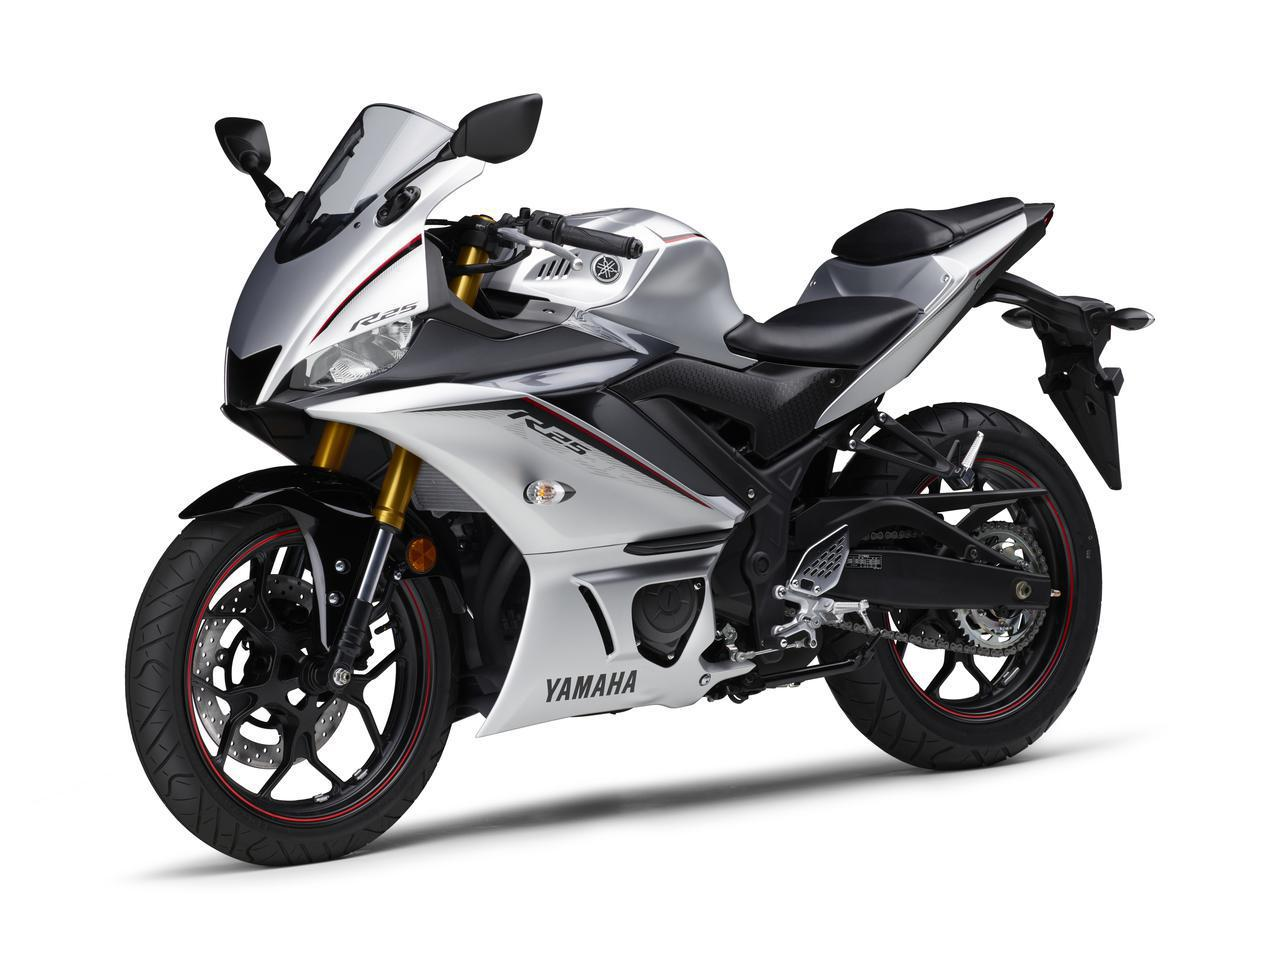 Images : 10番目の画像 - ヤマハ YZF-R25の写真をまとめて見る! - LAWRENCE - Motorcycle x Cars + α = Your Life.